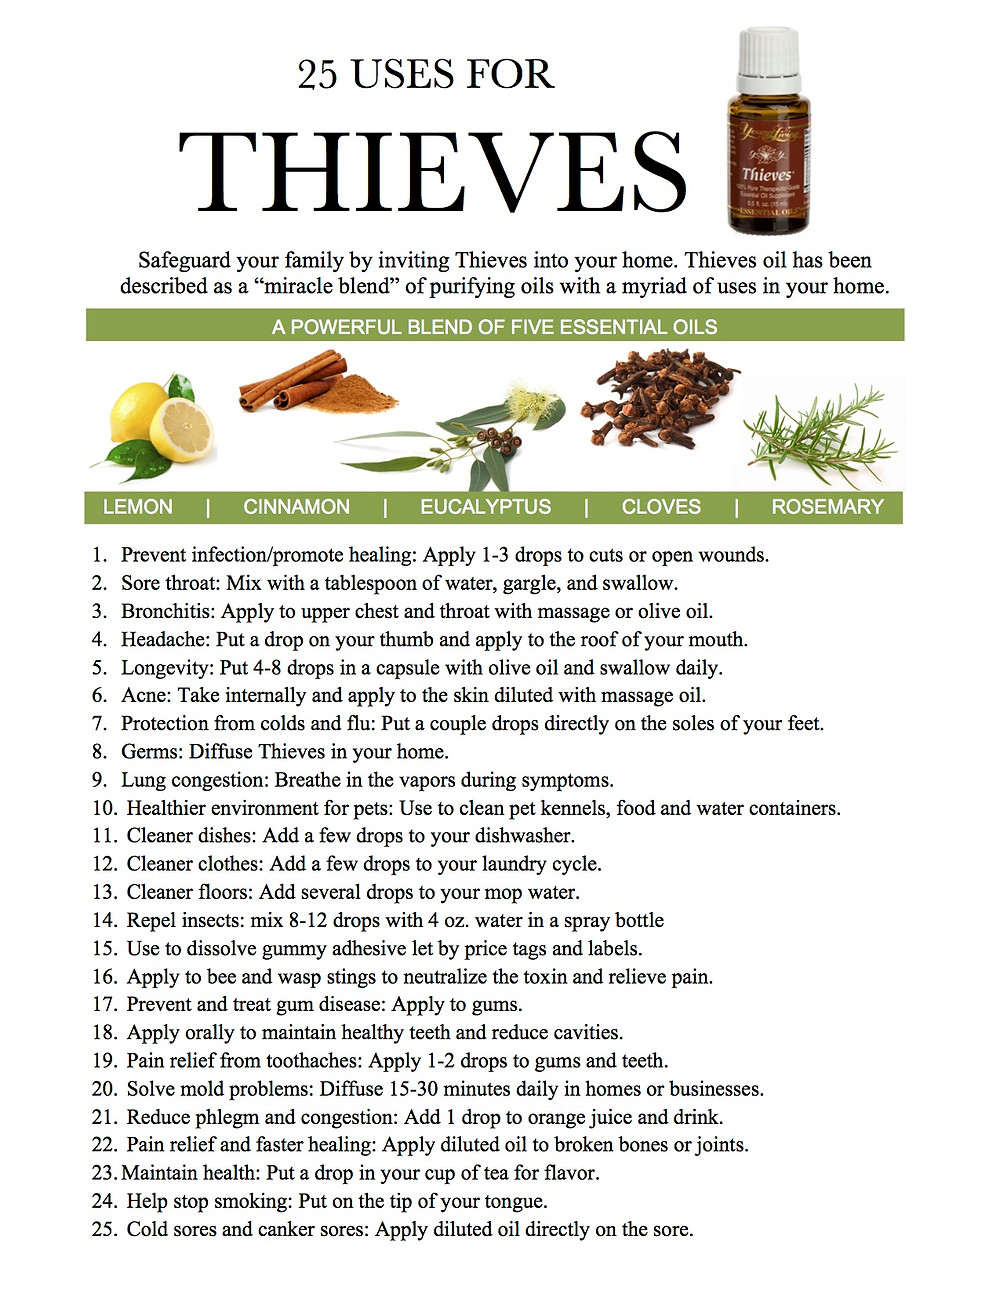 25 Uses for Thieves.jpg